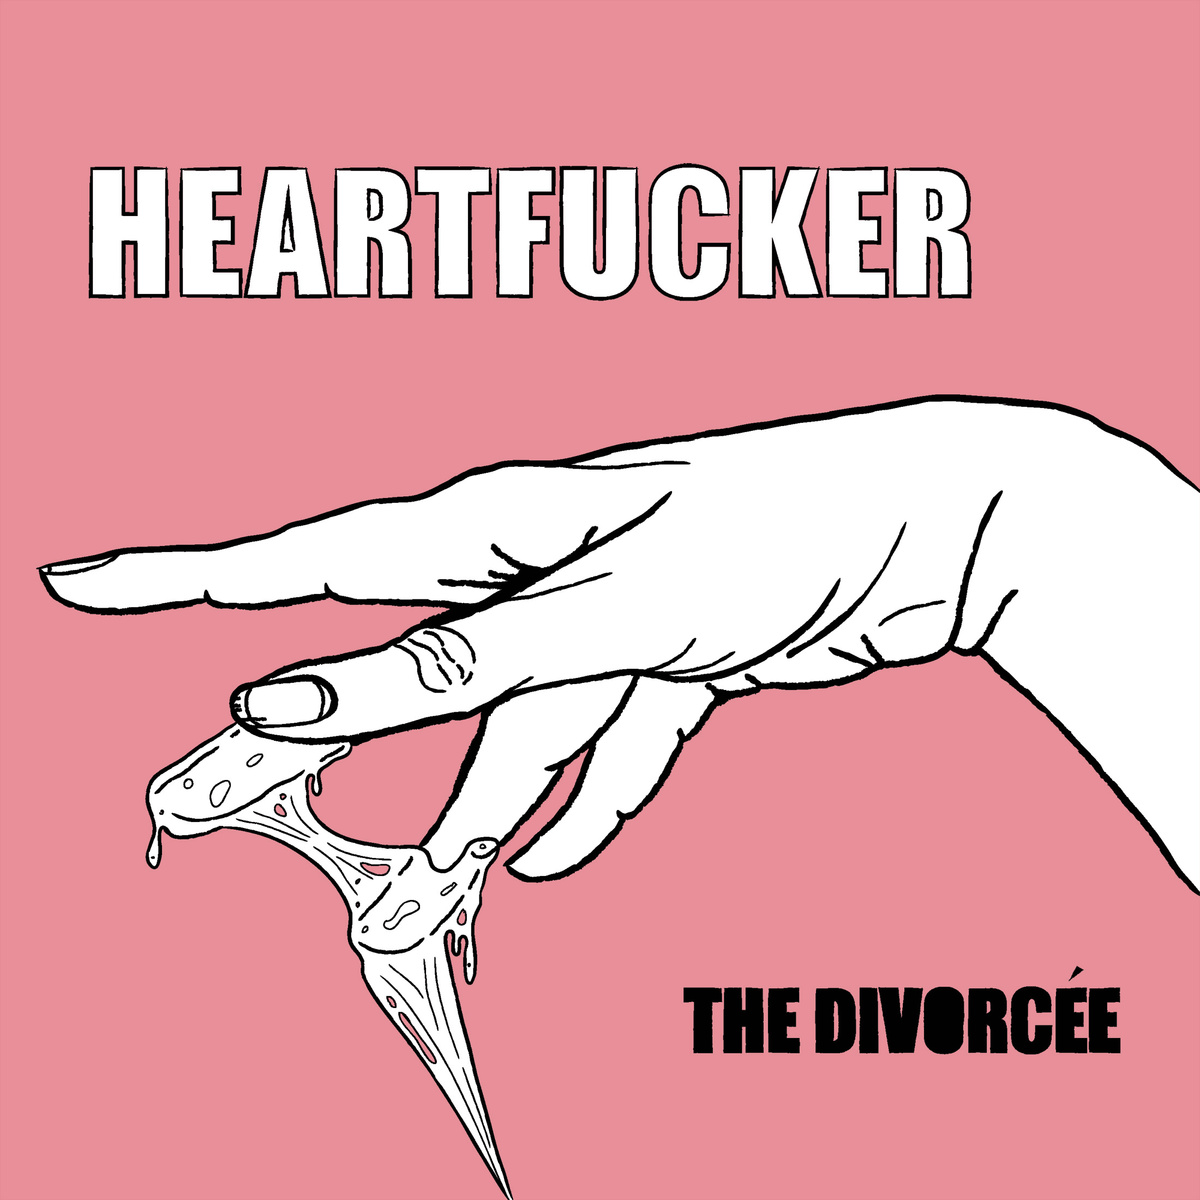 The Divorcee art.jpg